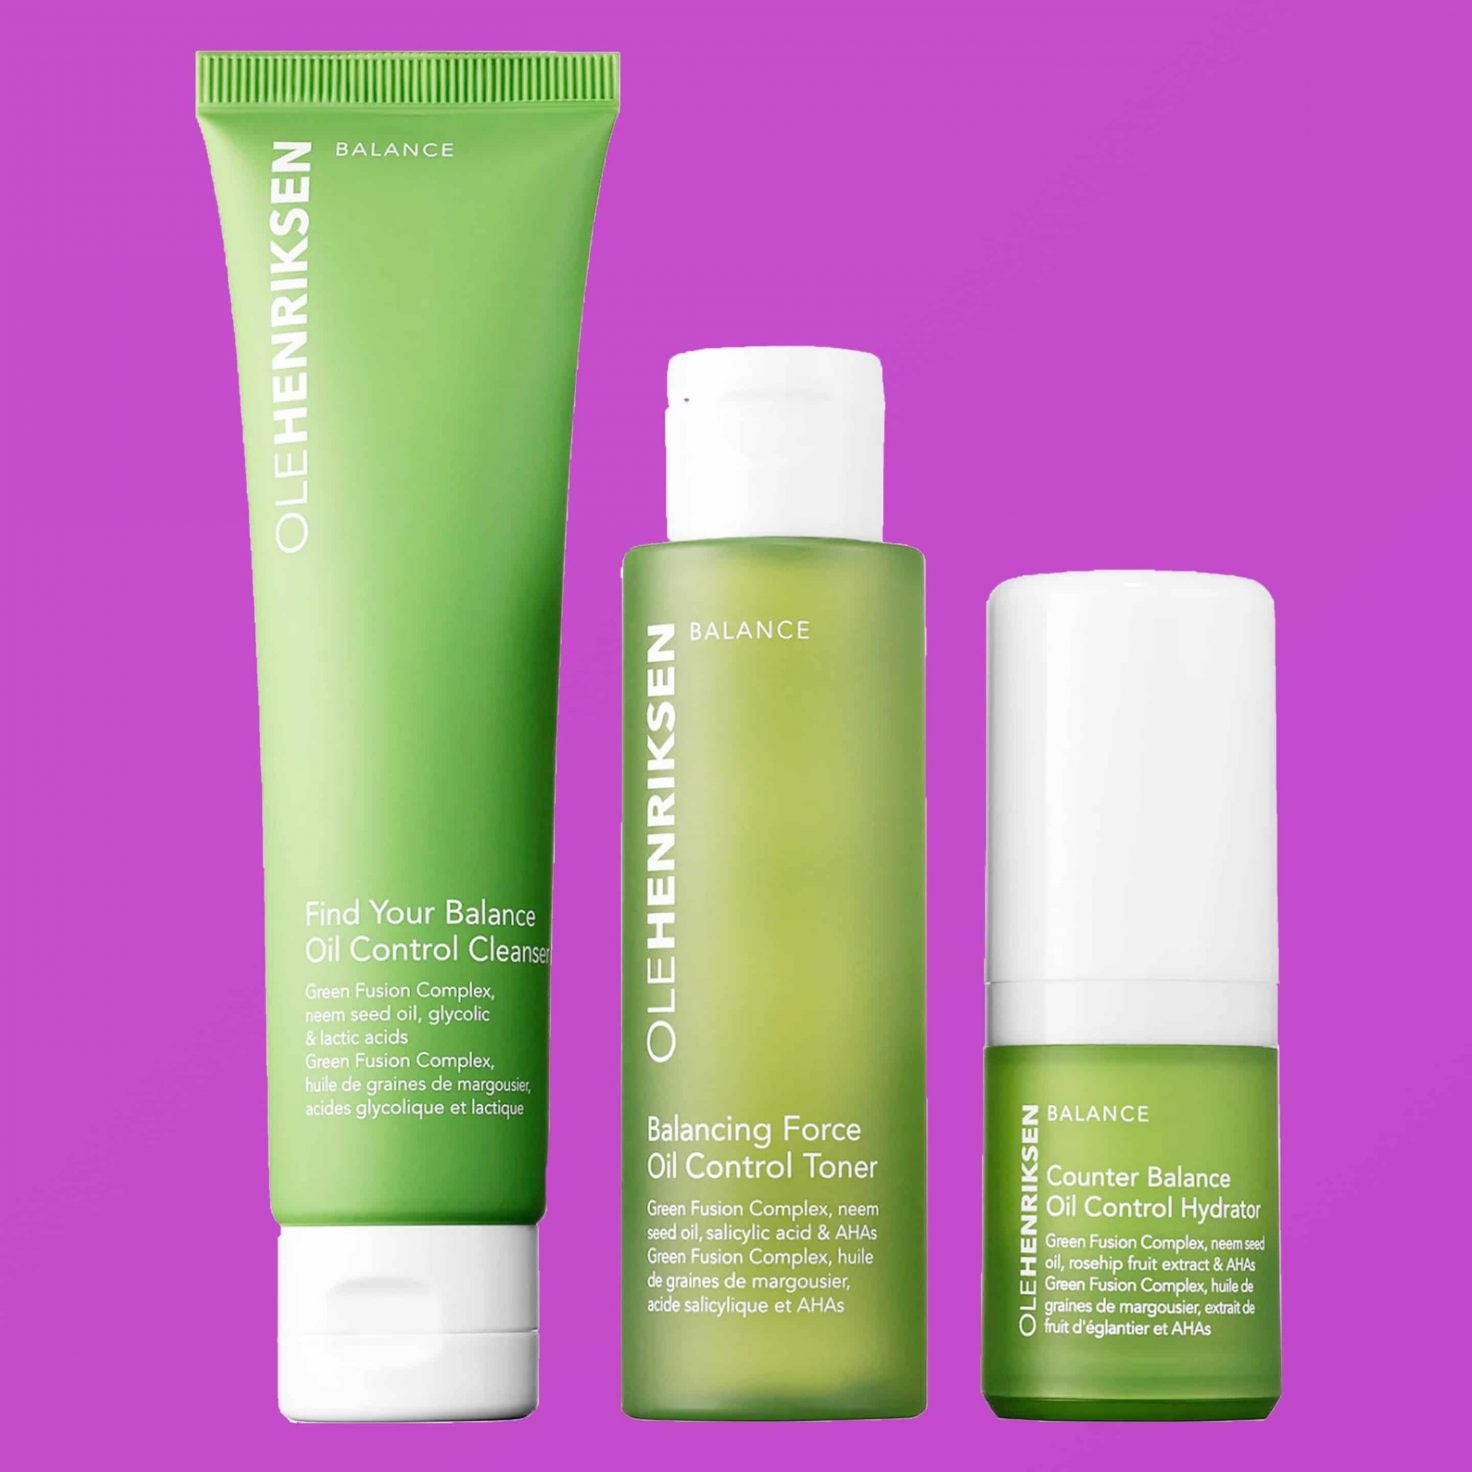 I Tried Ole Henriksen's 'Balance It All' Skin Cleansing Trio and Saw Results in 2 Days